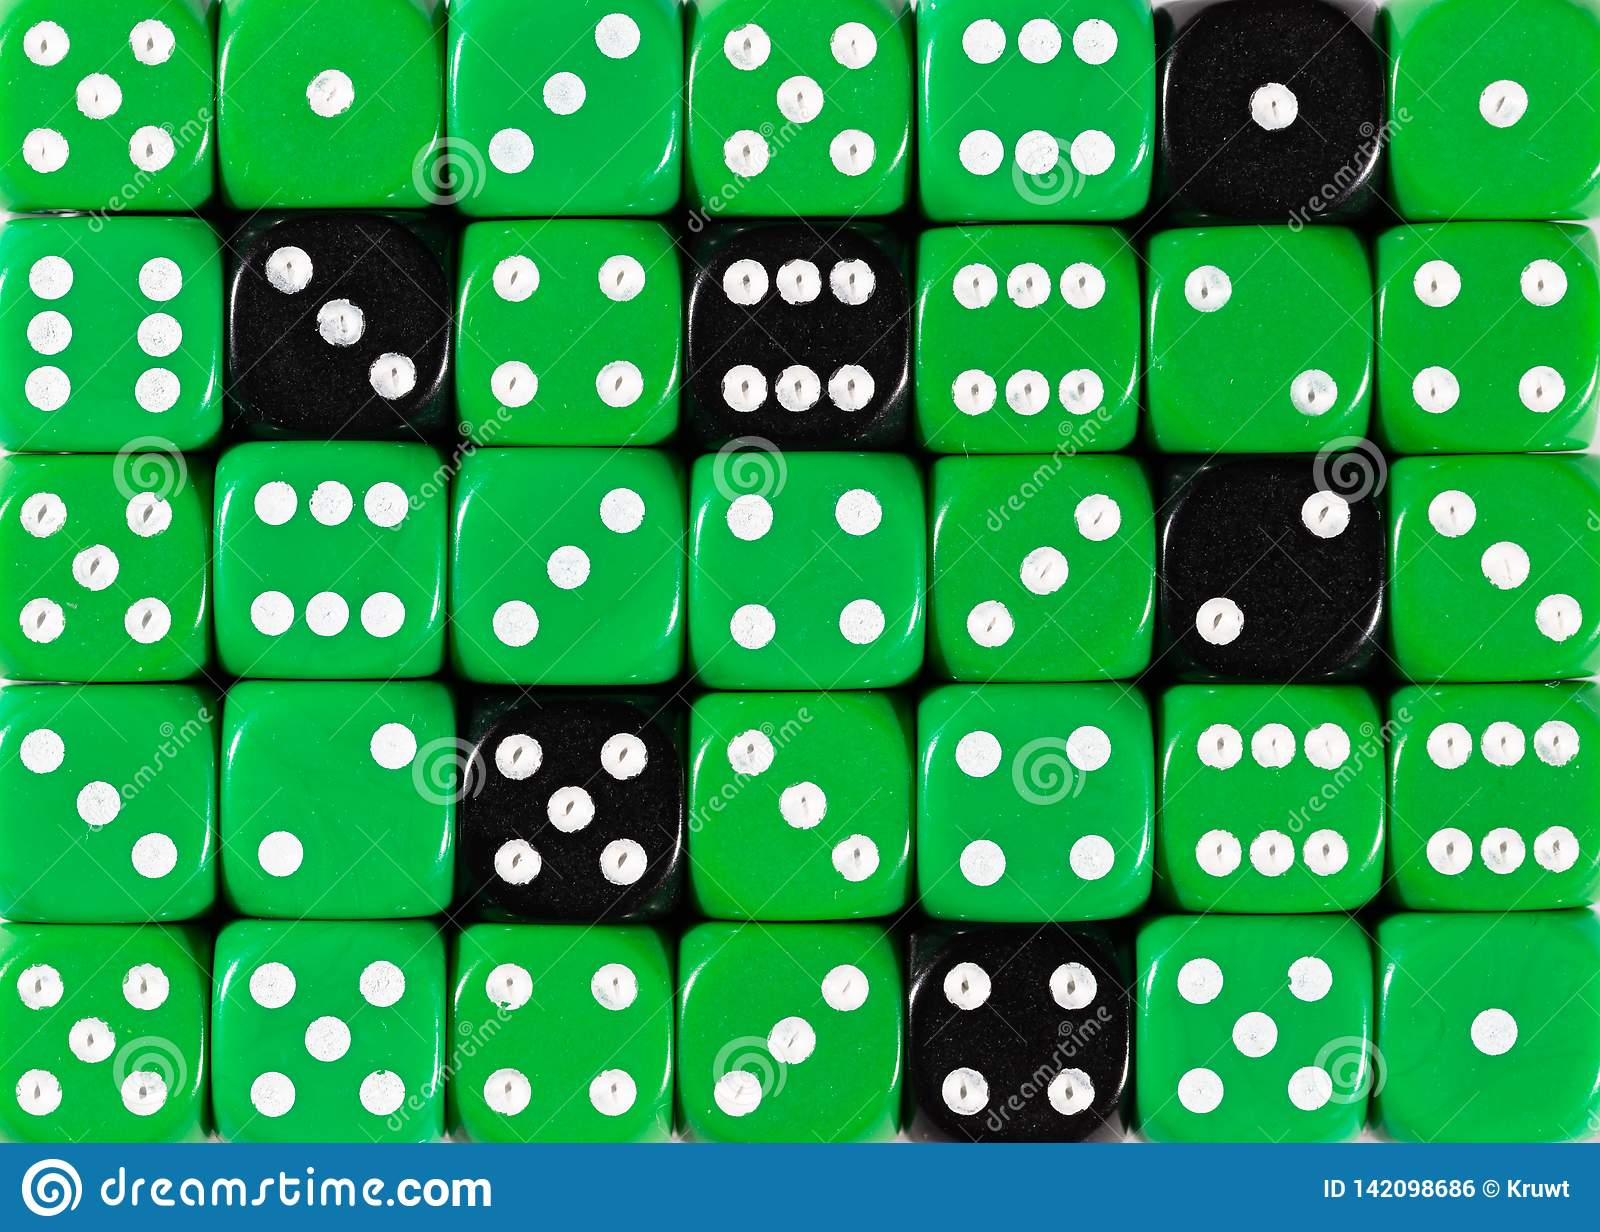 Background of random ordered green dices with six black cubes